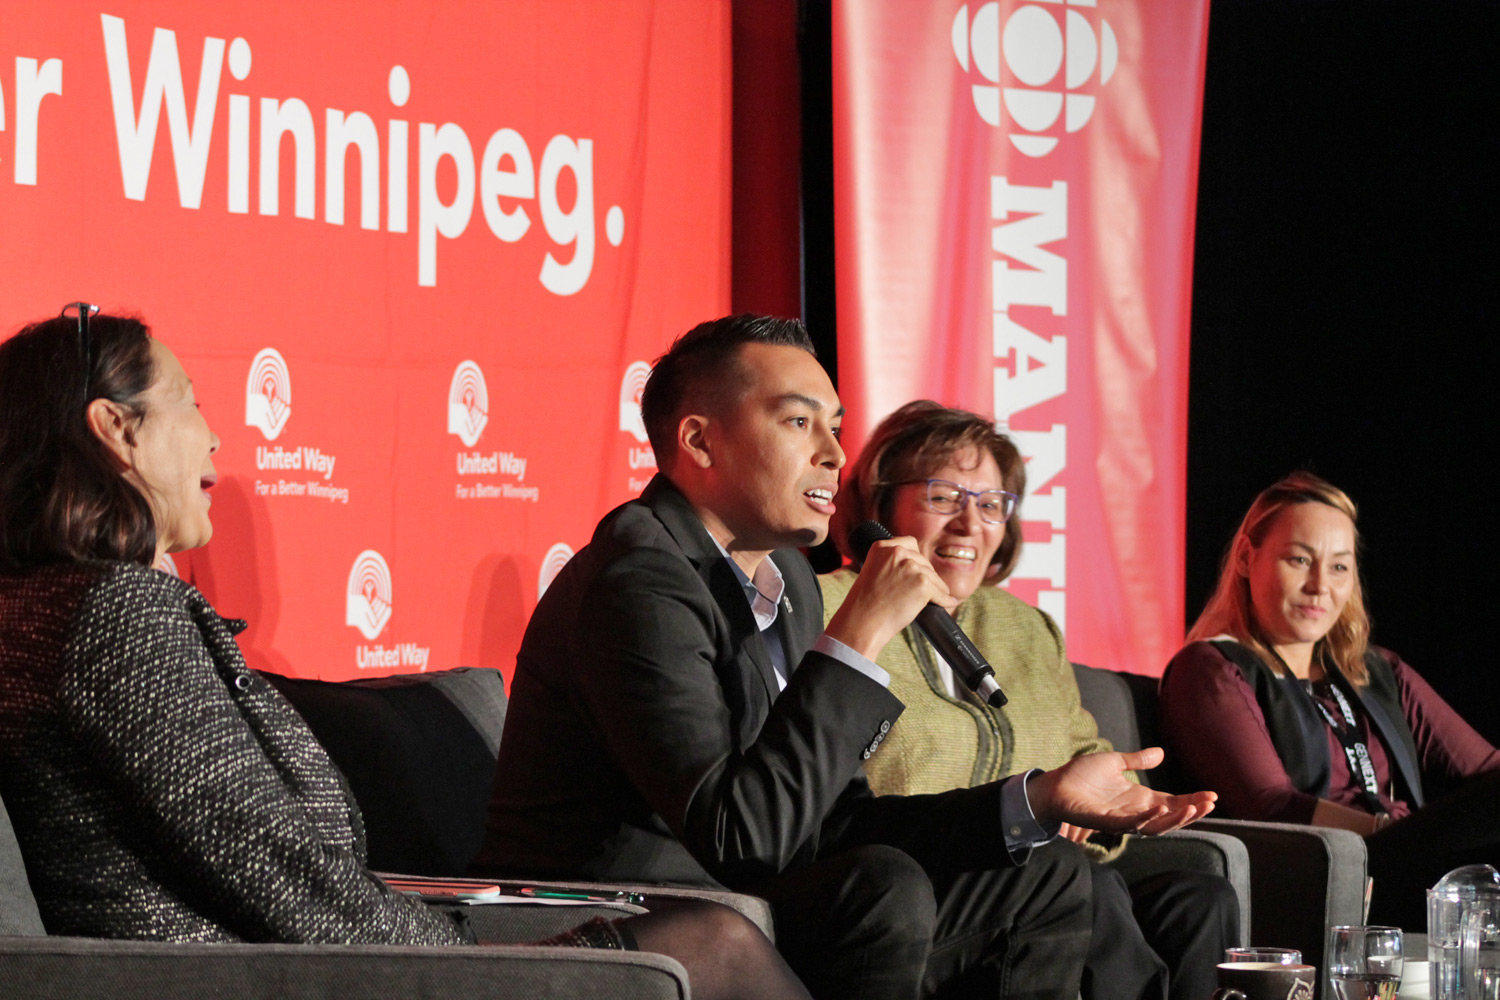 IMG_3172Hanwakan Whitecloud, joined by Jaimie Issac and Wendy Whitecloud, speaks during The Seeds of Reconciliation panel discussion moderated by Tina Keeper.